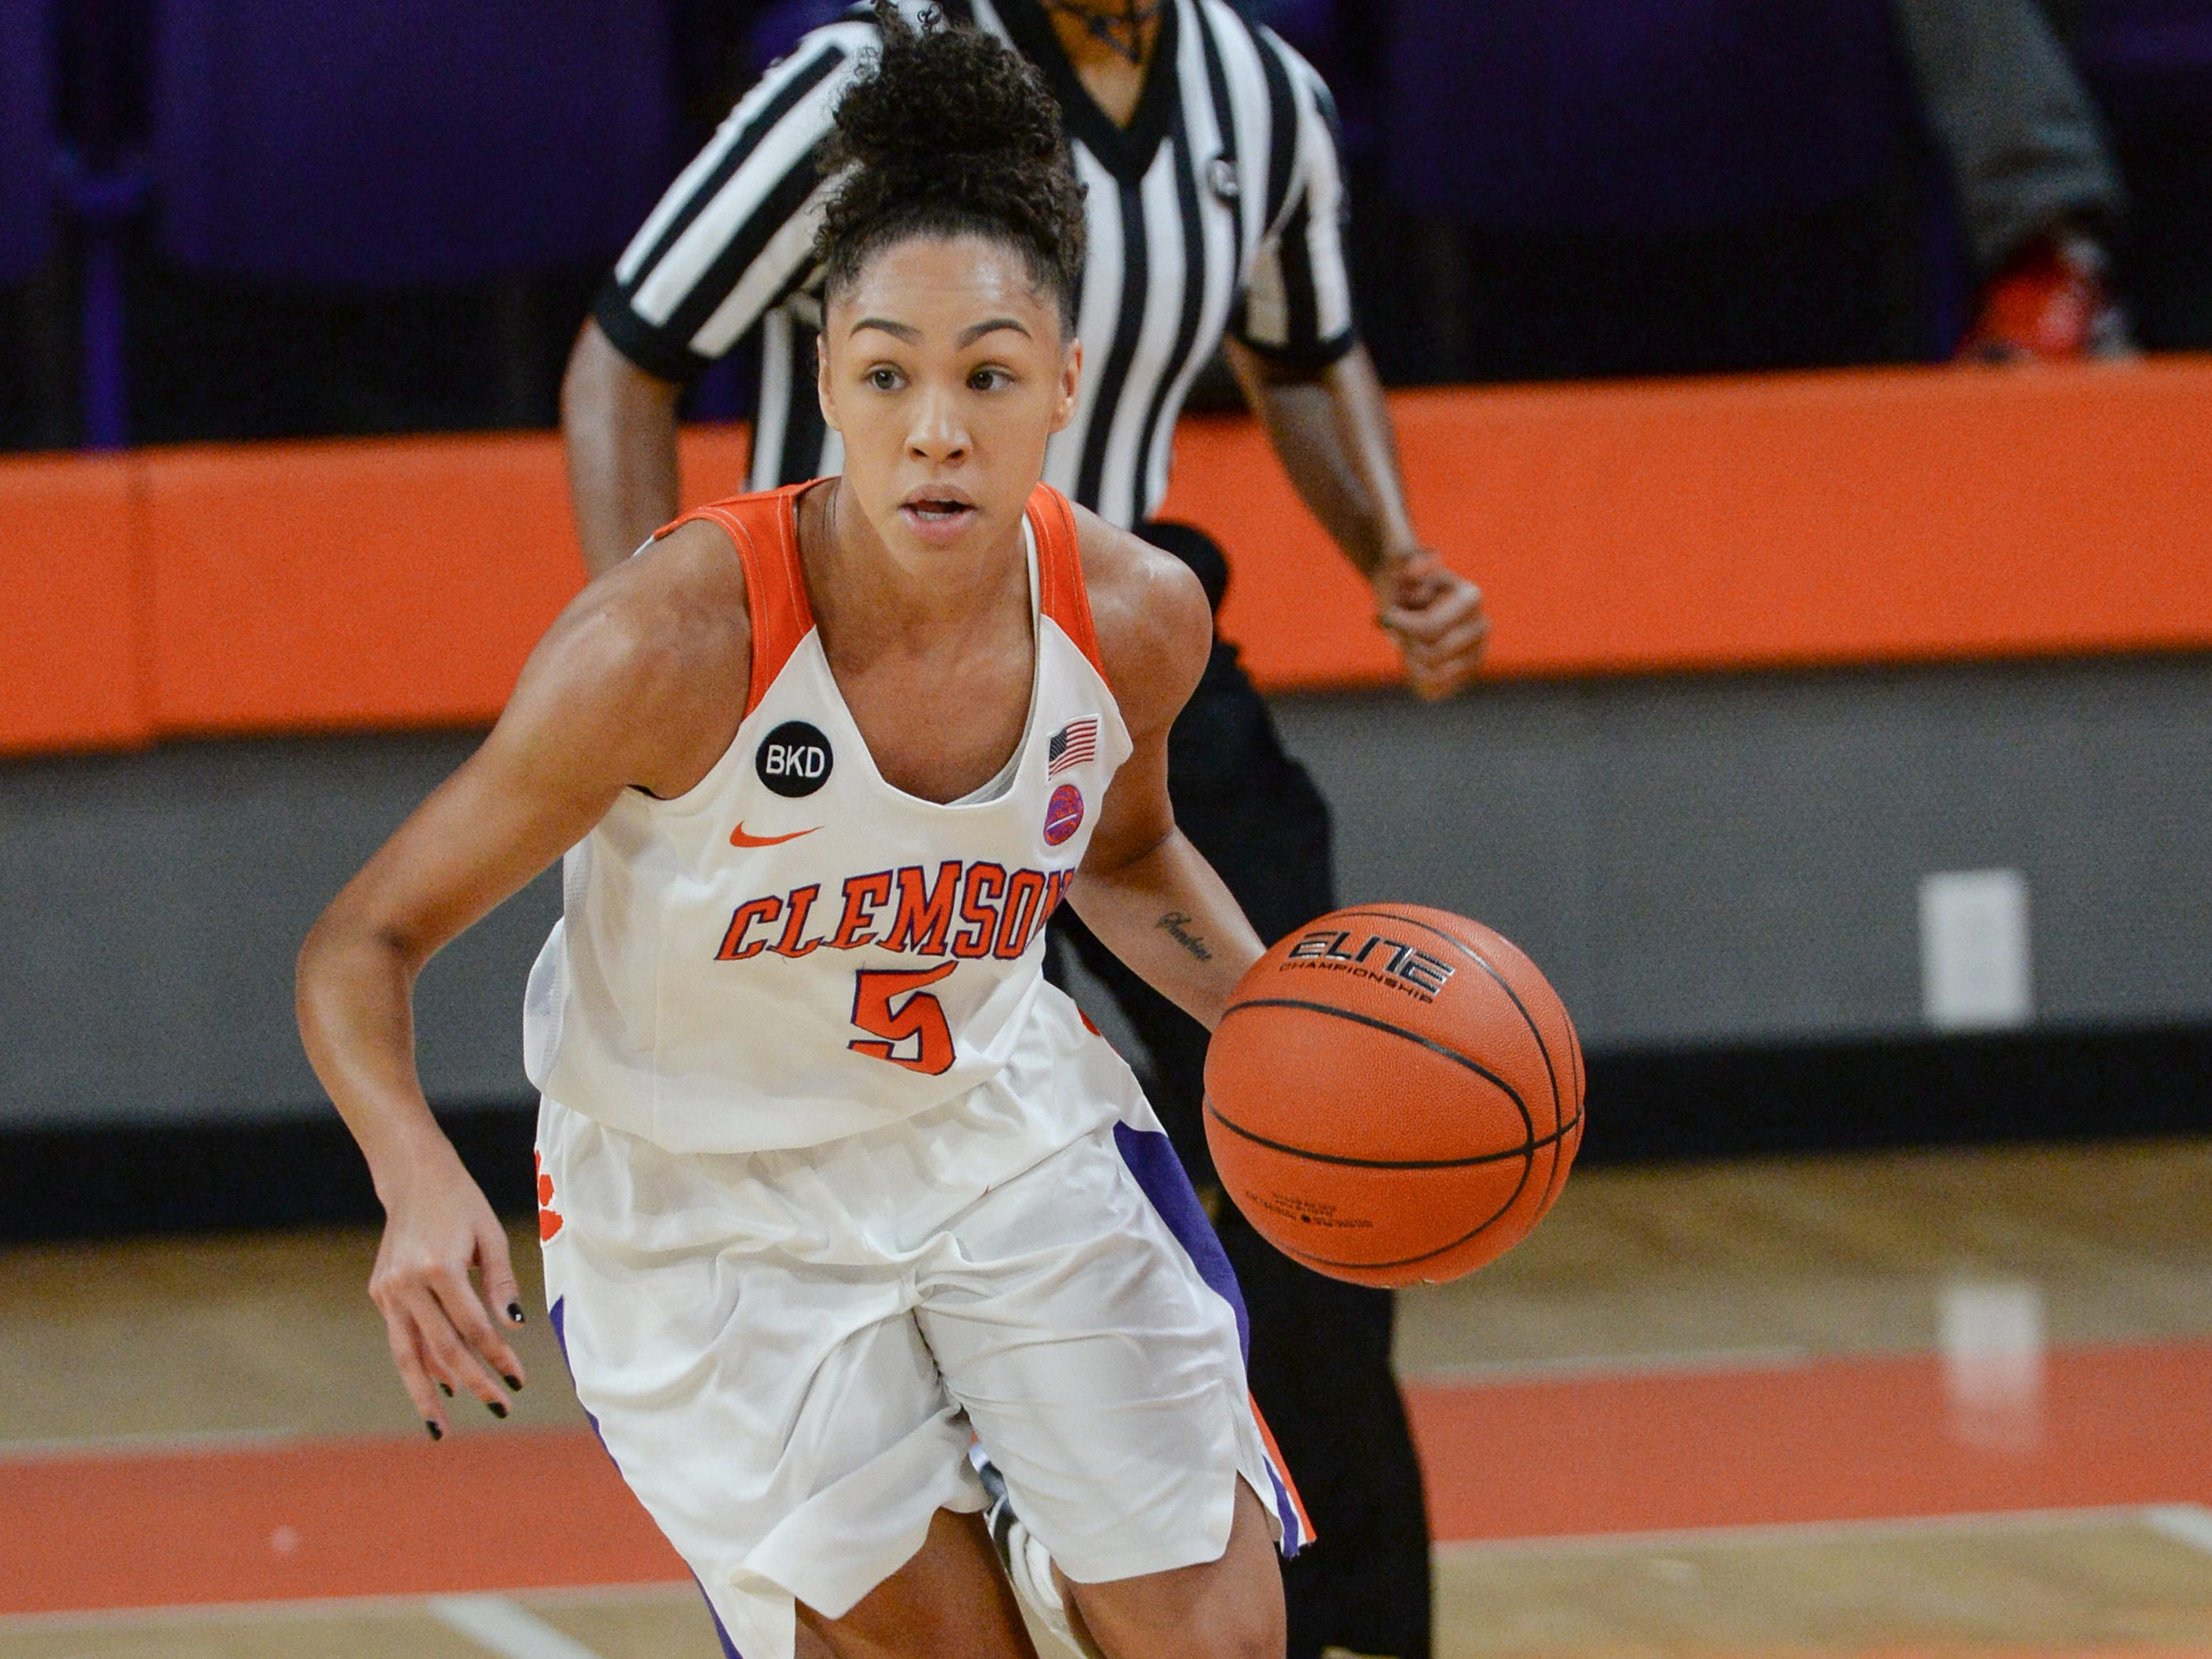 Clemson guard Danielle Edwards(5) dribbles playing Georgia Tech during the second quarter at Littlejohn Coliseum in Clemson Thursday, January 17, 2019.